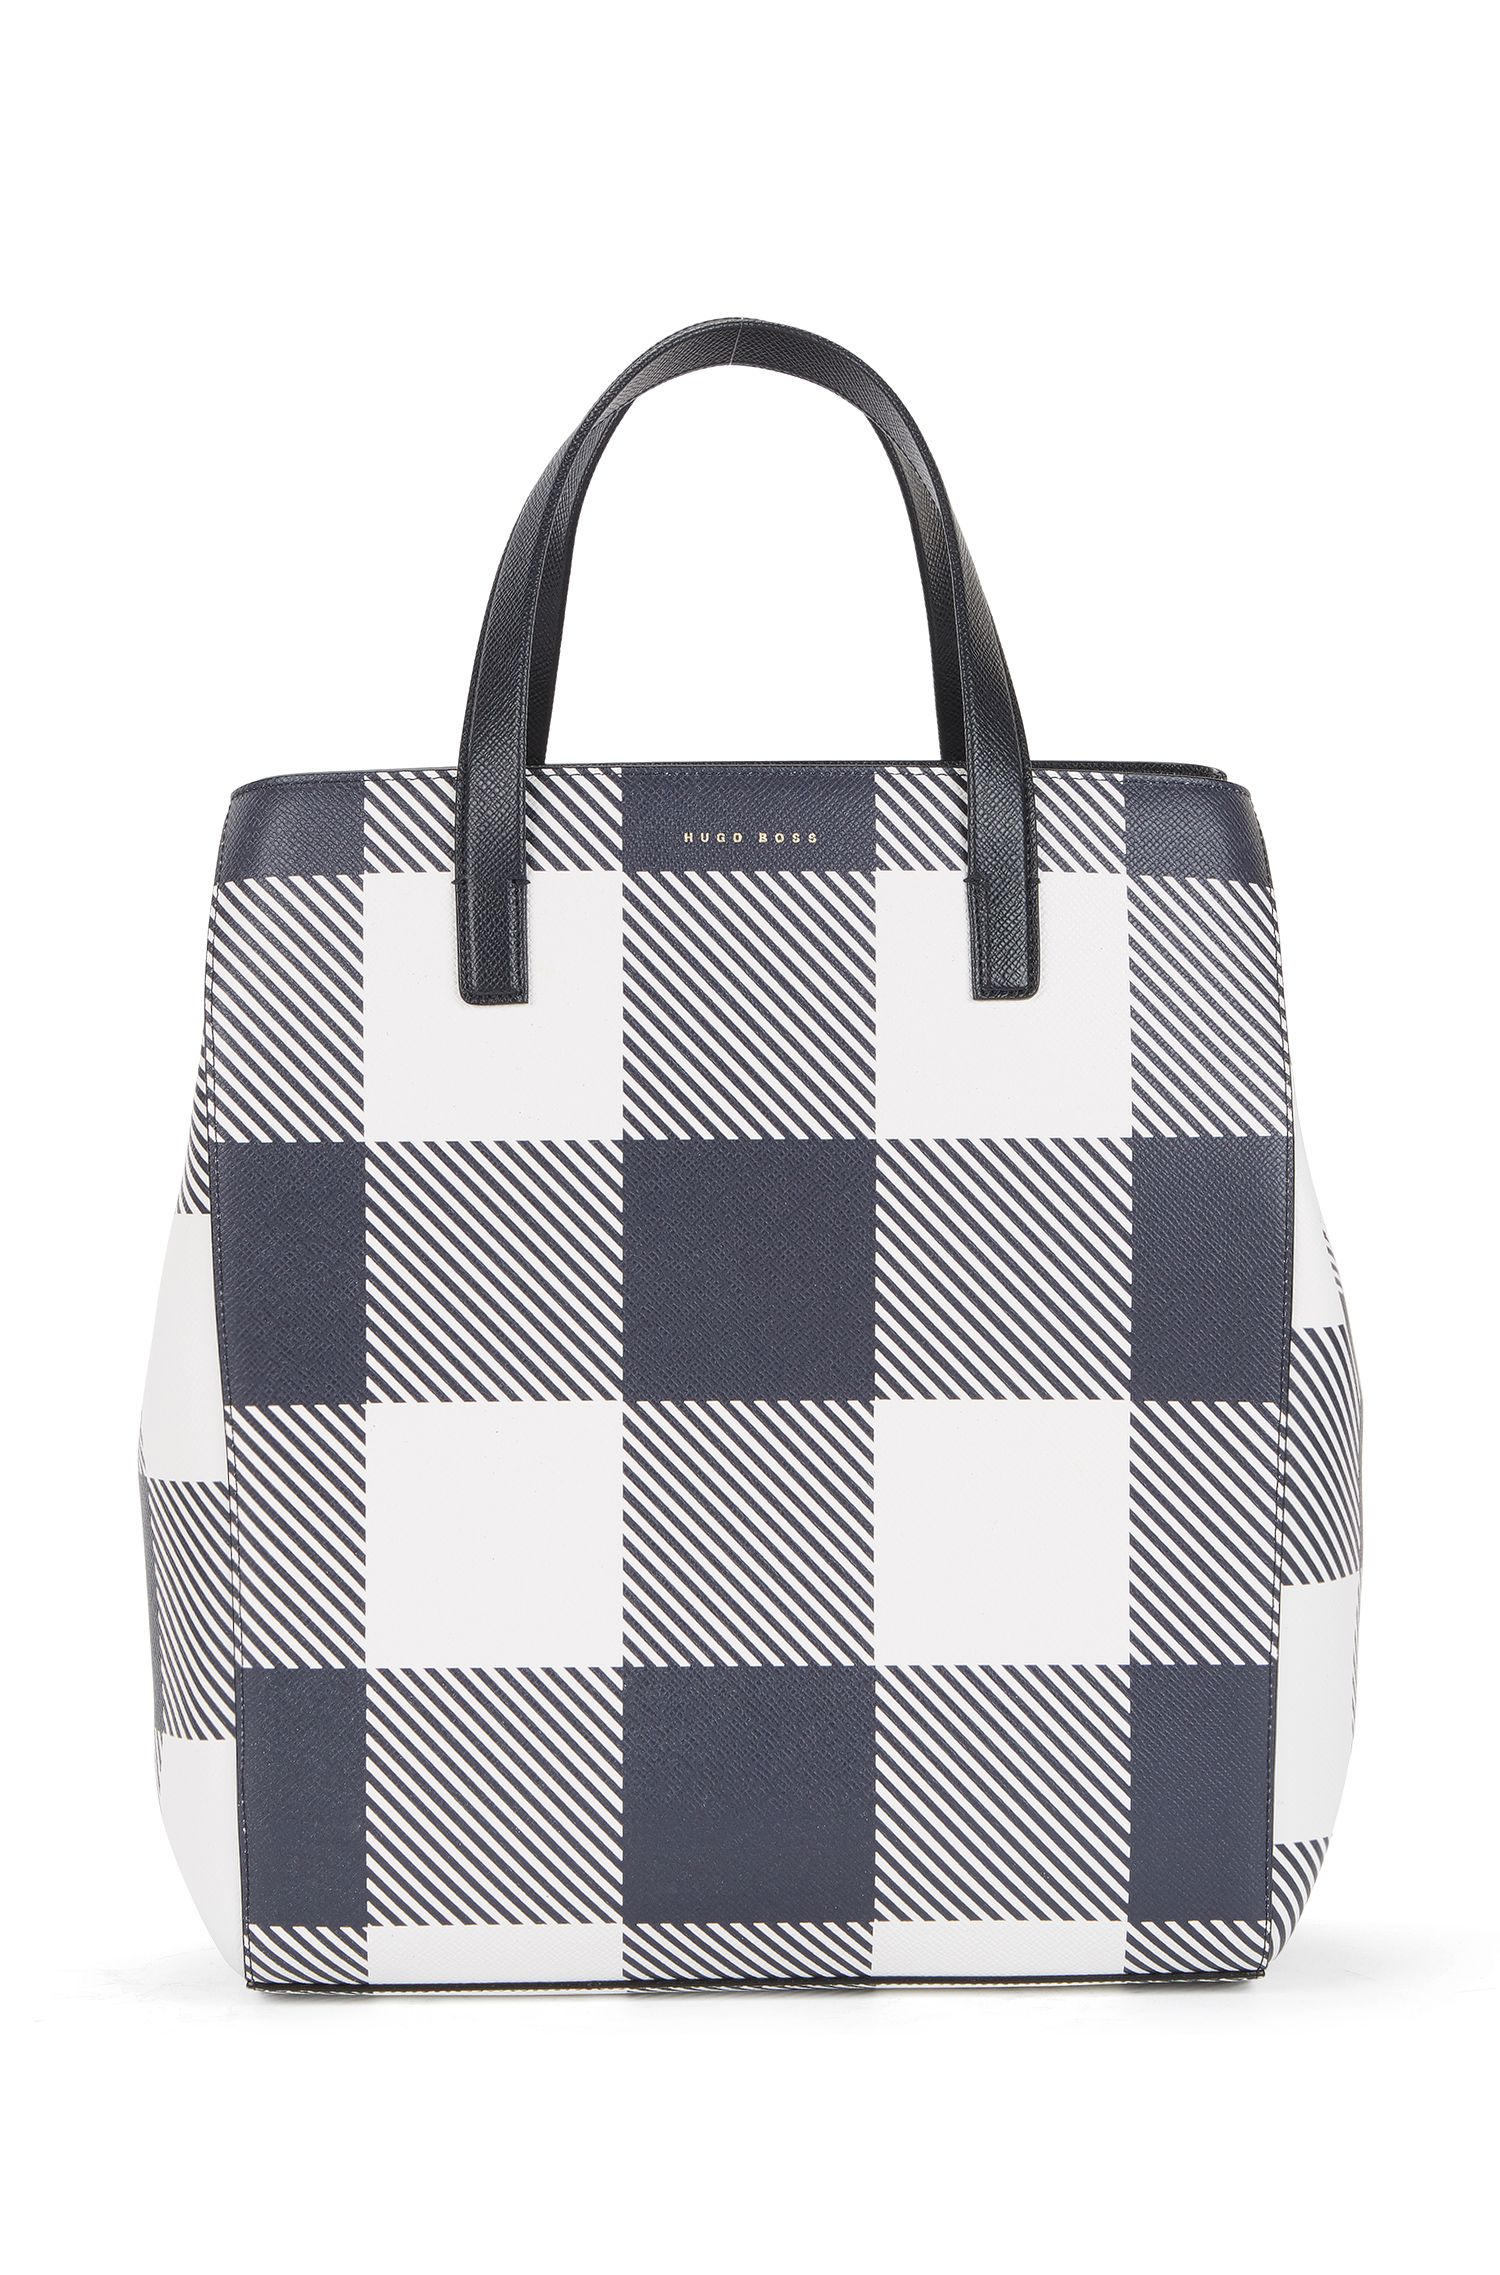 Checked Leather Tote | Soft Tote V